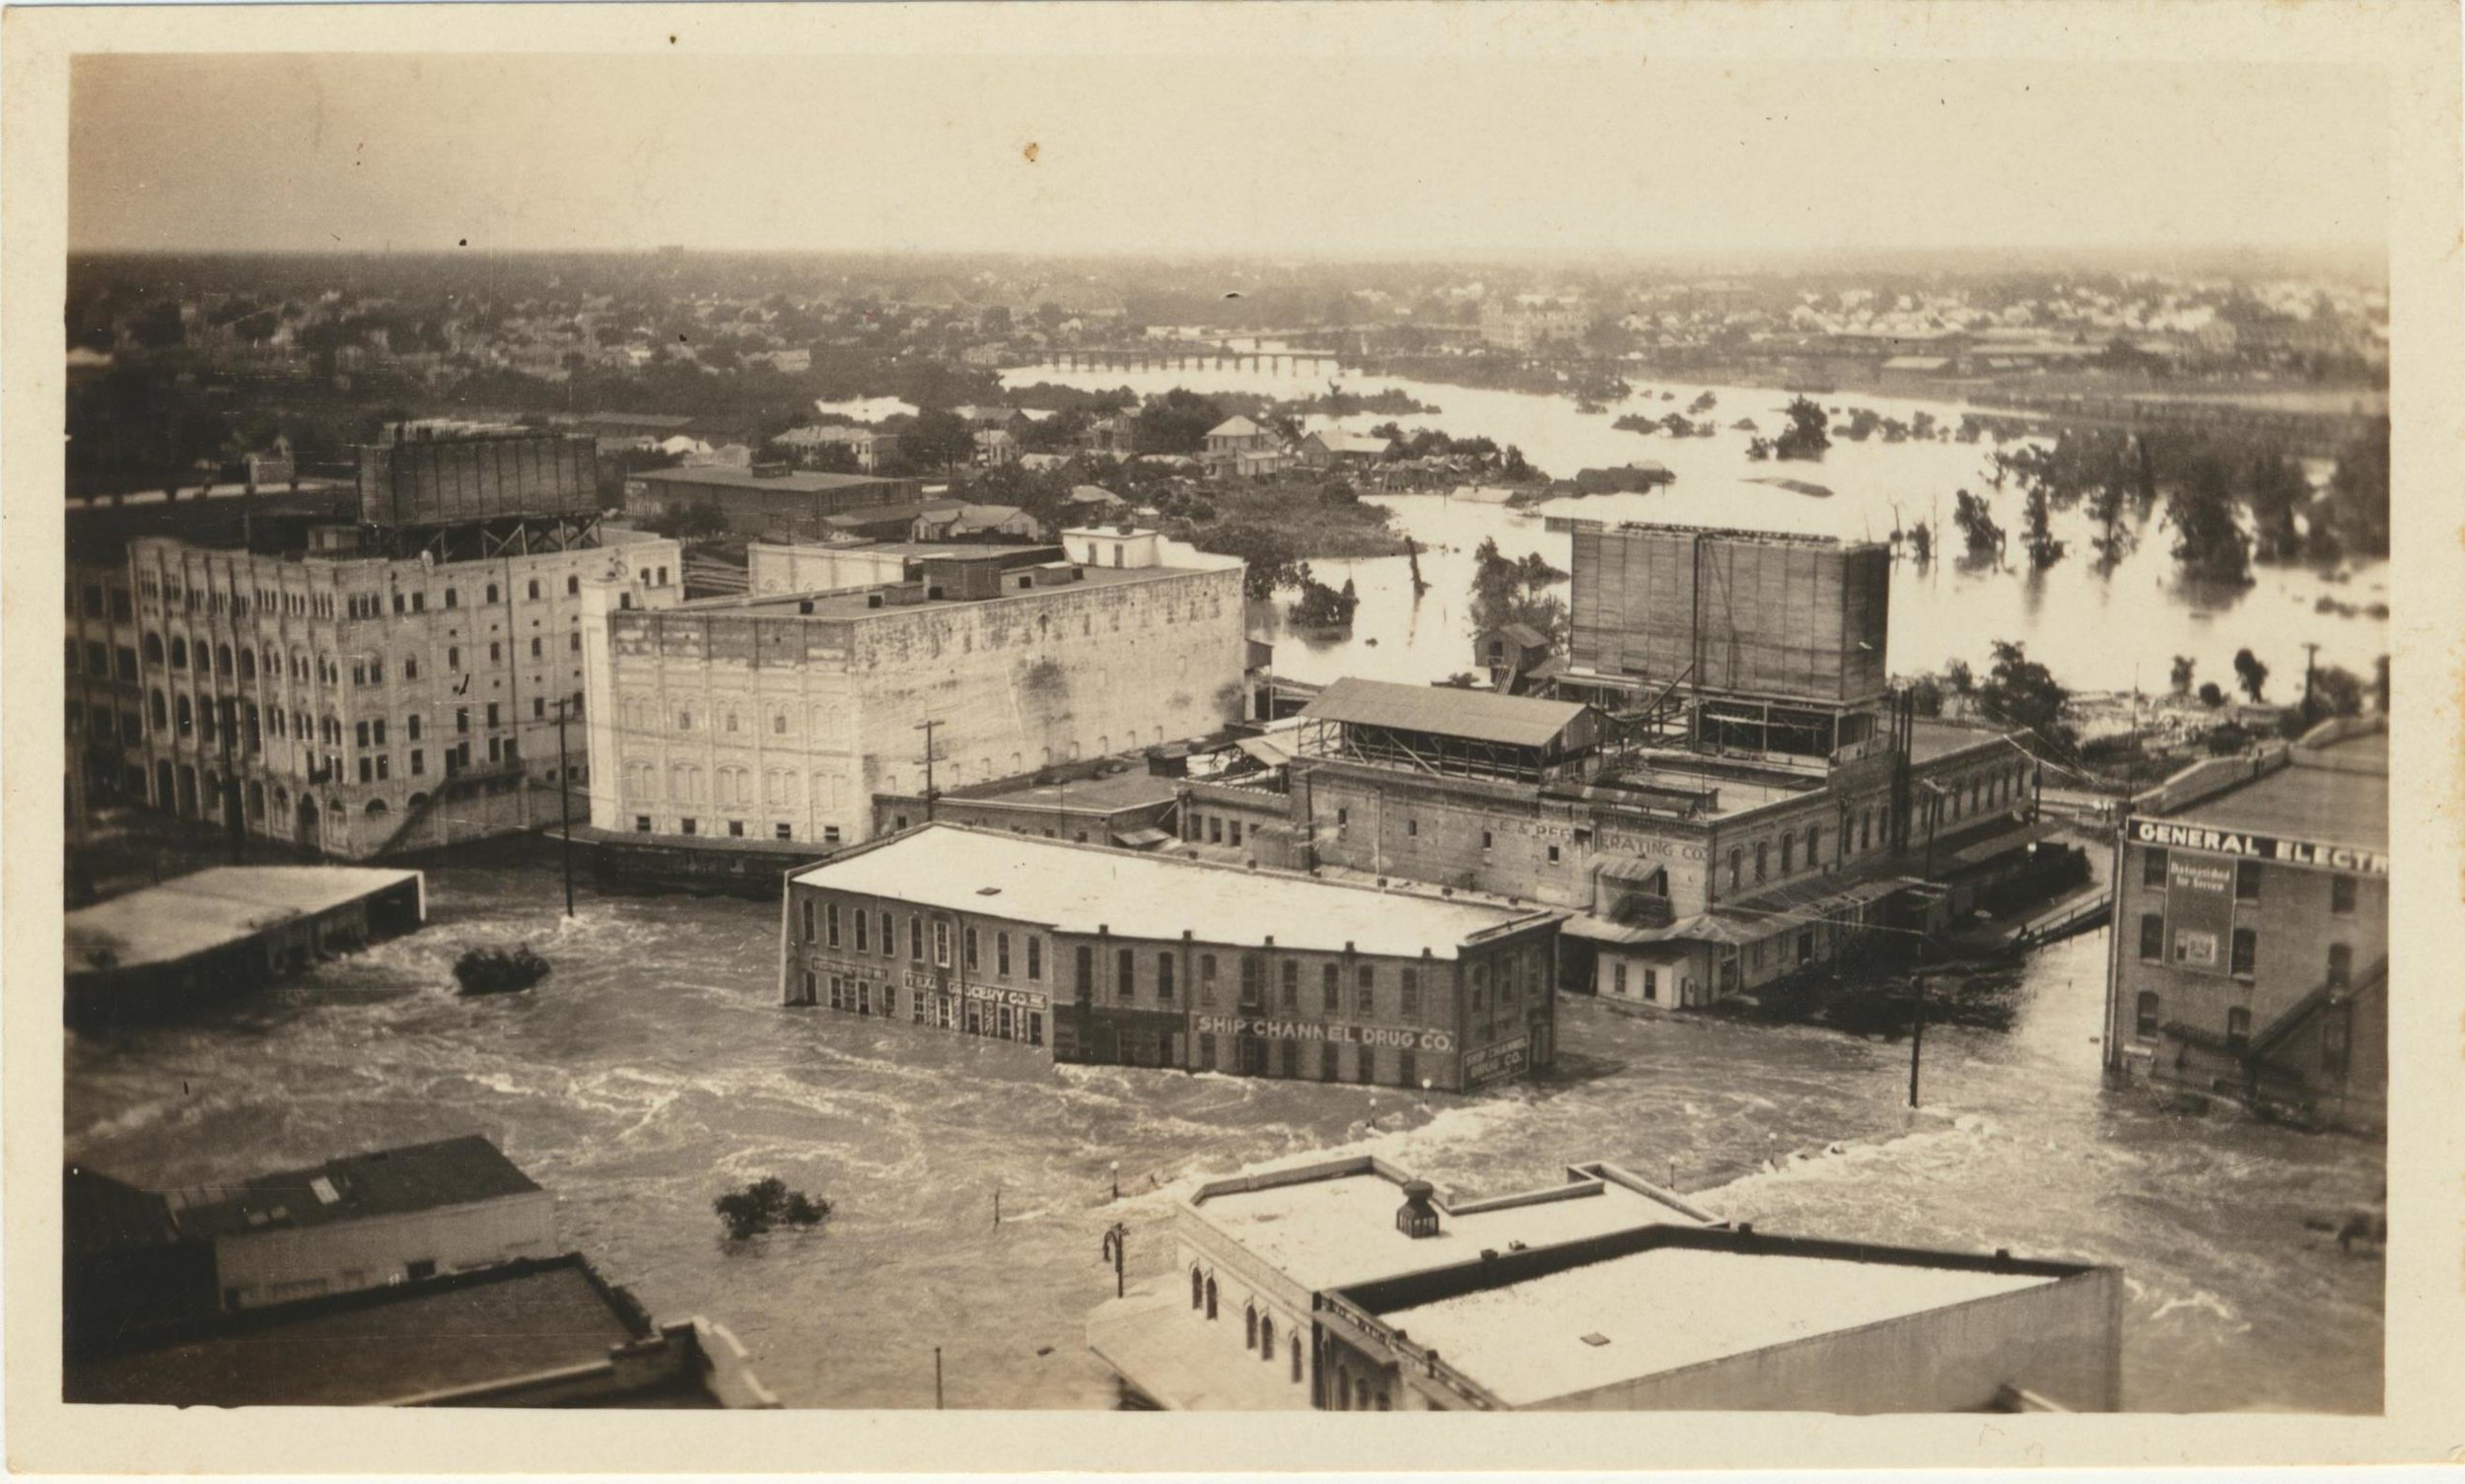 May 31, 1929 flood-this photo illustrates how the waters of buffalo bayou inundated downtown houston.